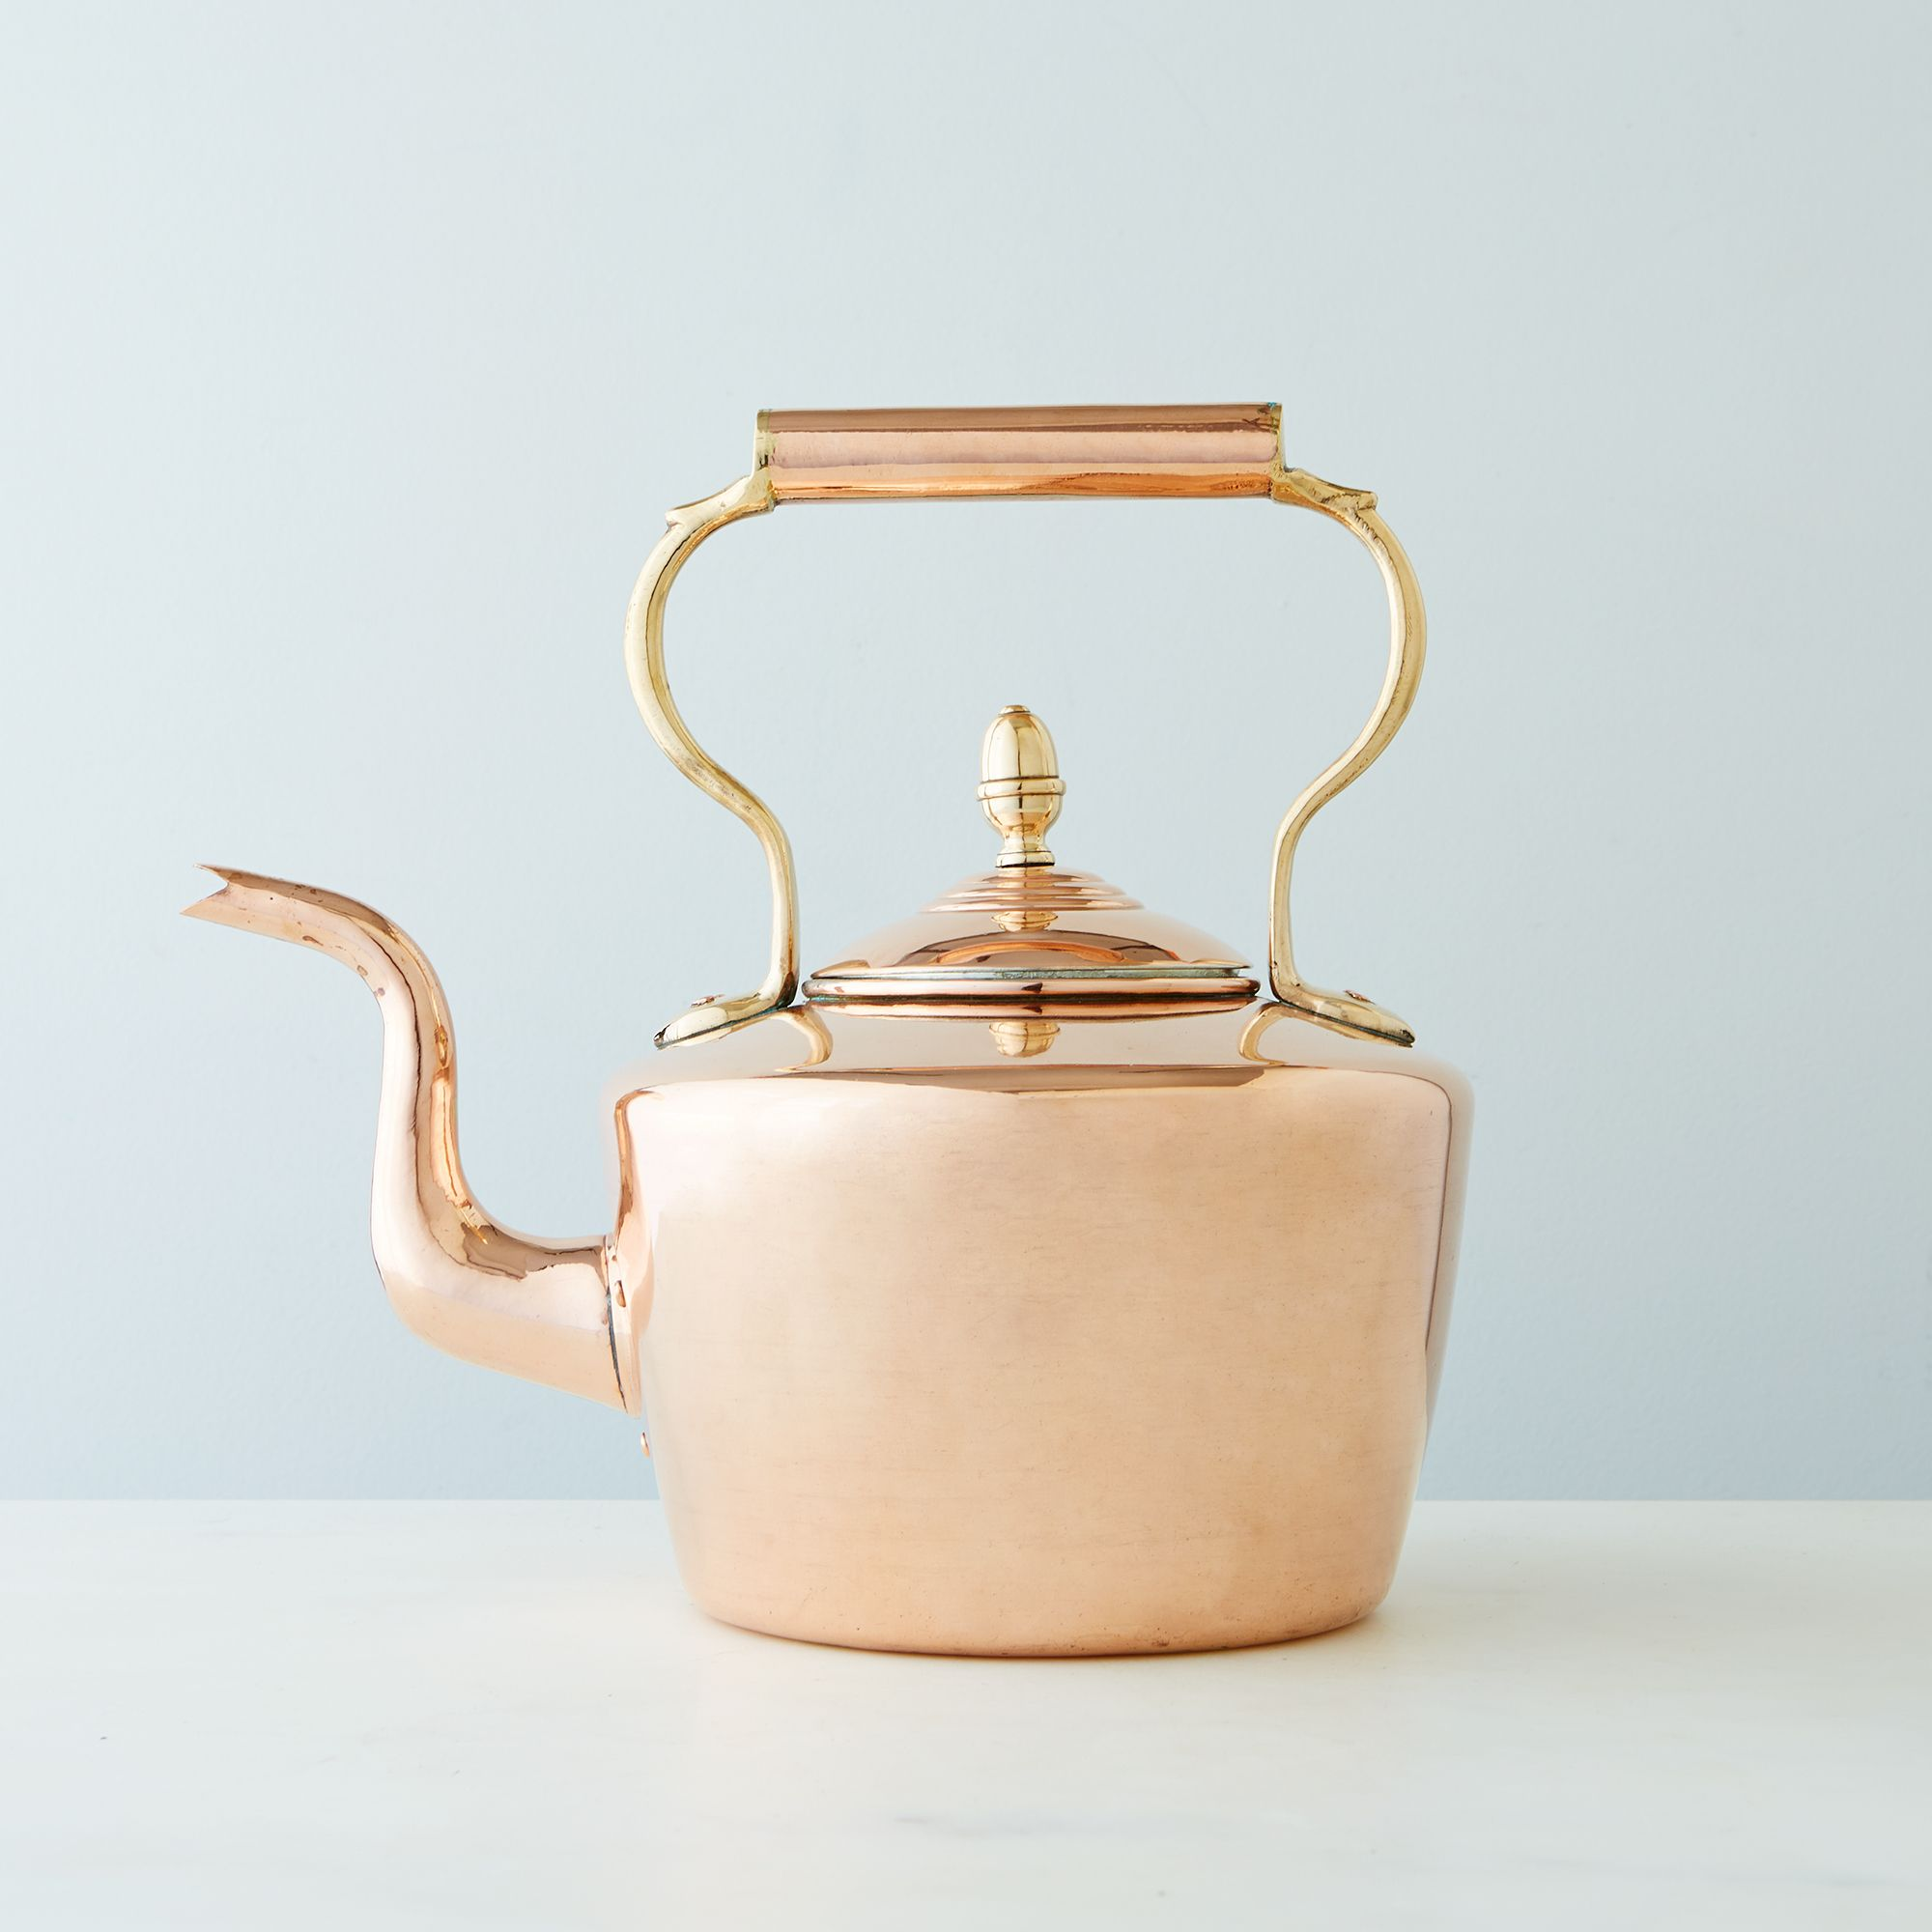 Da550138 0df2 49c8 b043 ef4794378ab6  coppermill kitchen vintage copper large round english tea kettle mid19th 5 provisions mark weinberg 18 09 14 0689 silo